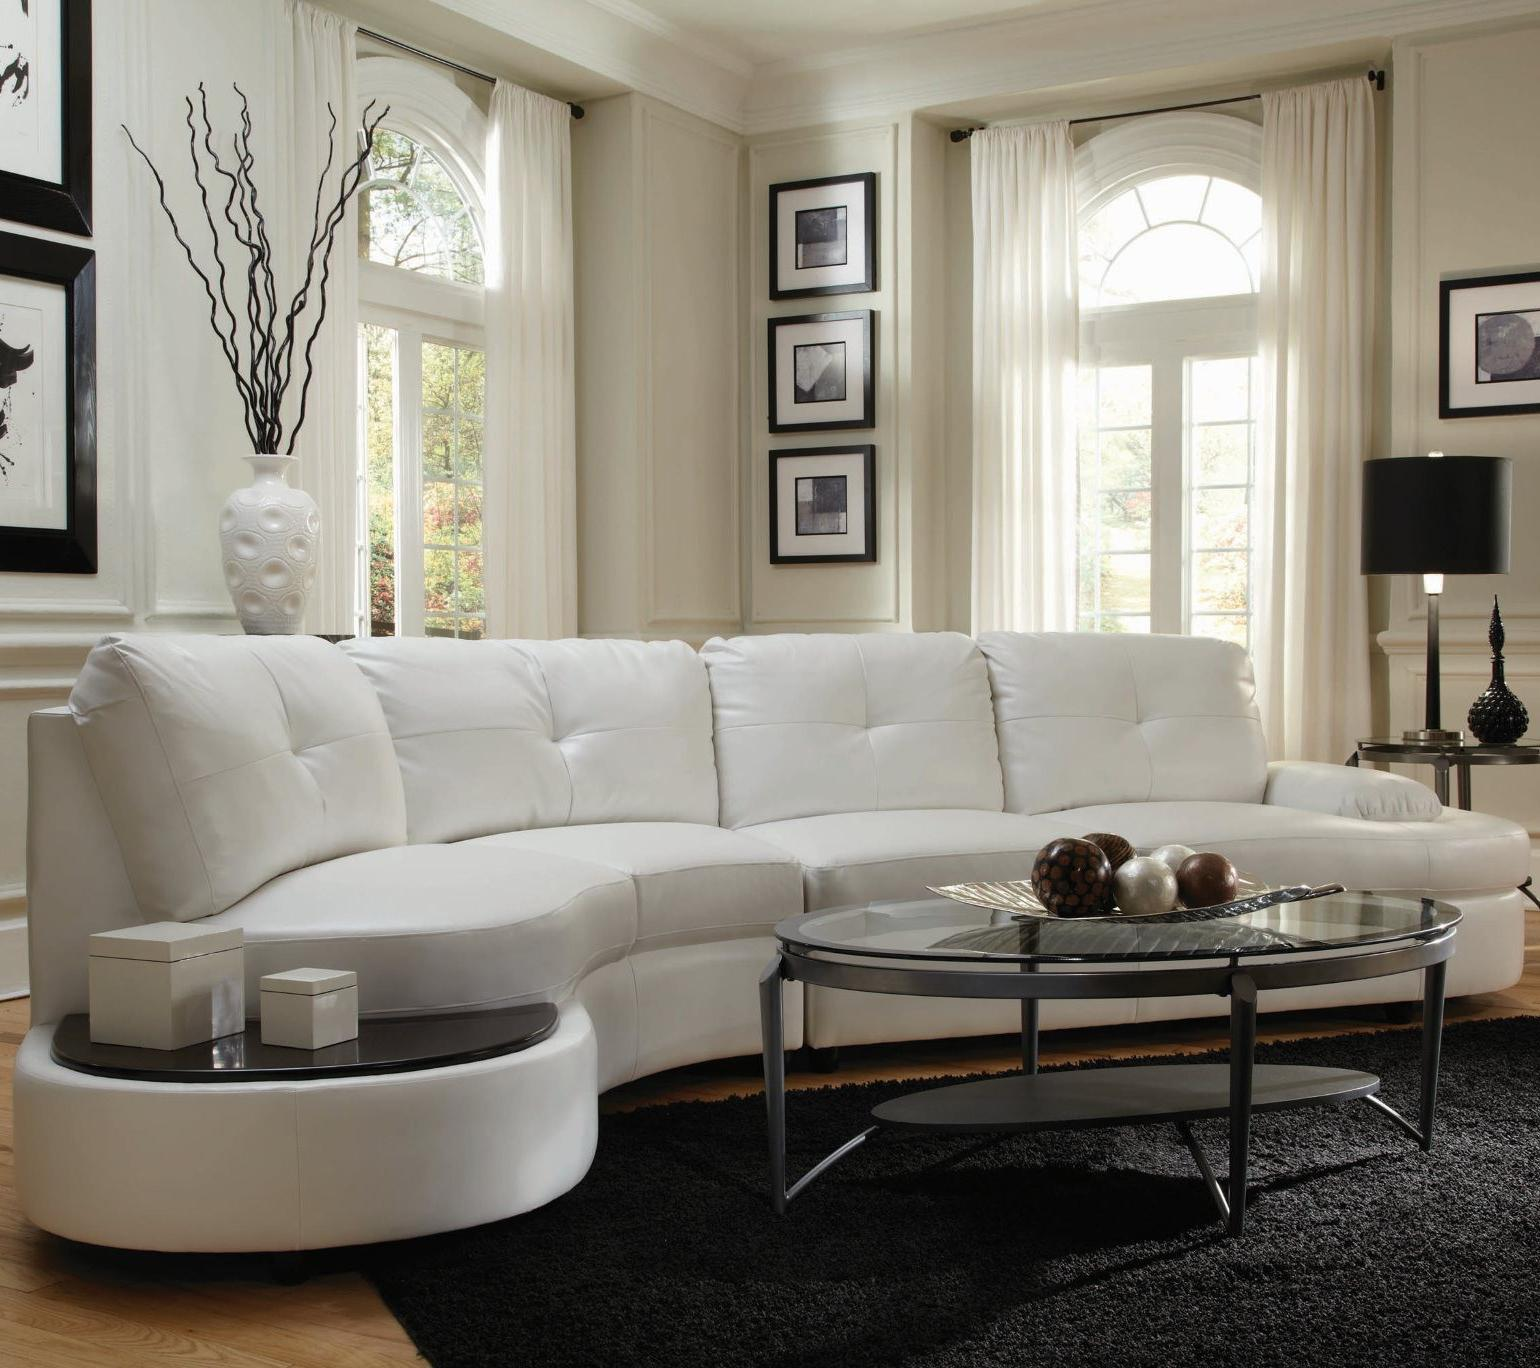 Talia Contemporary Sectional Conversation Sofa with Built-In Table ...